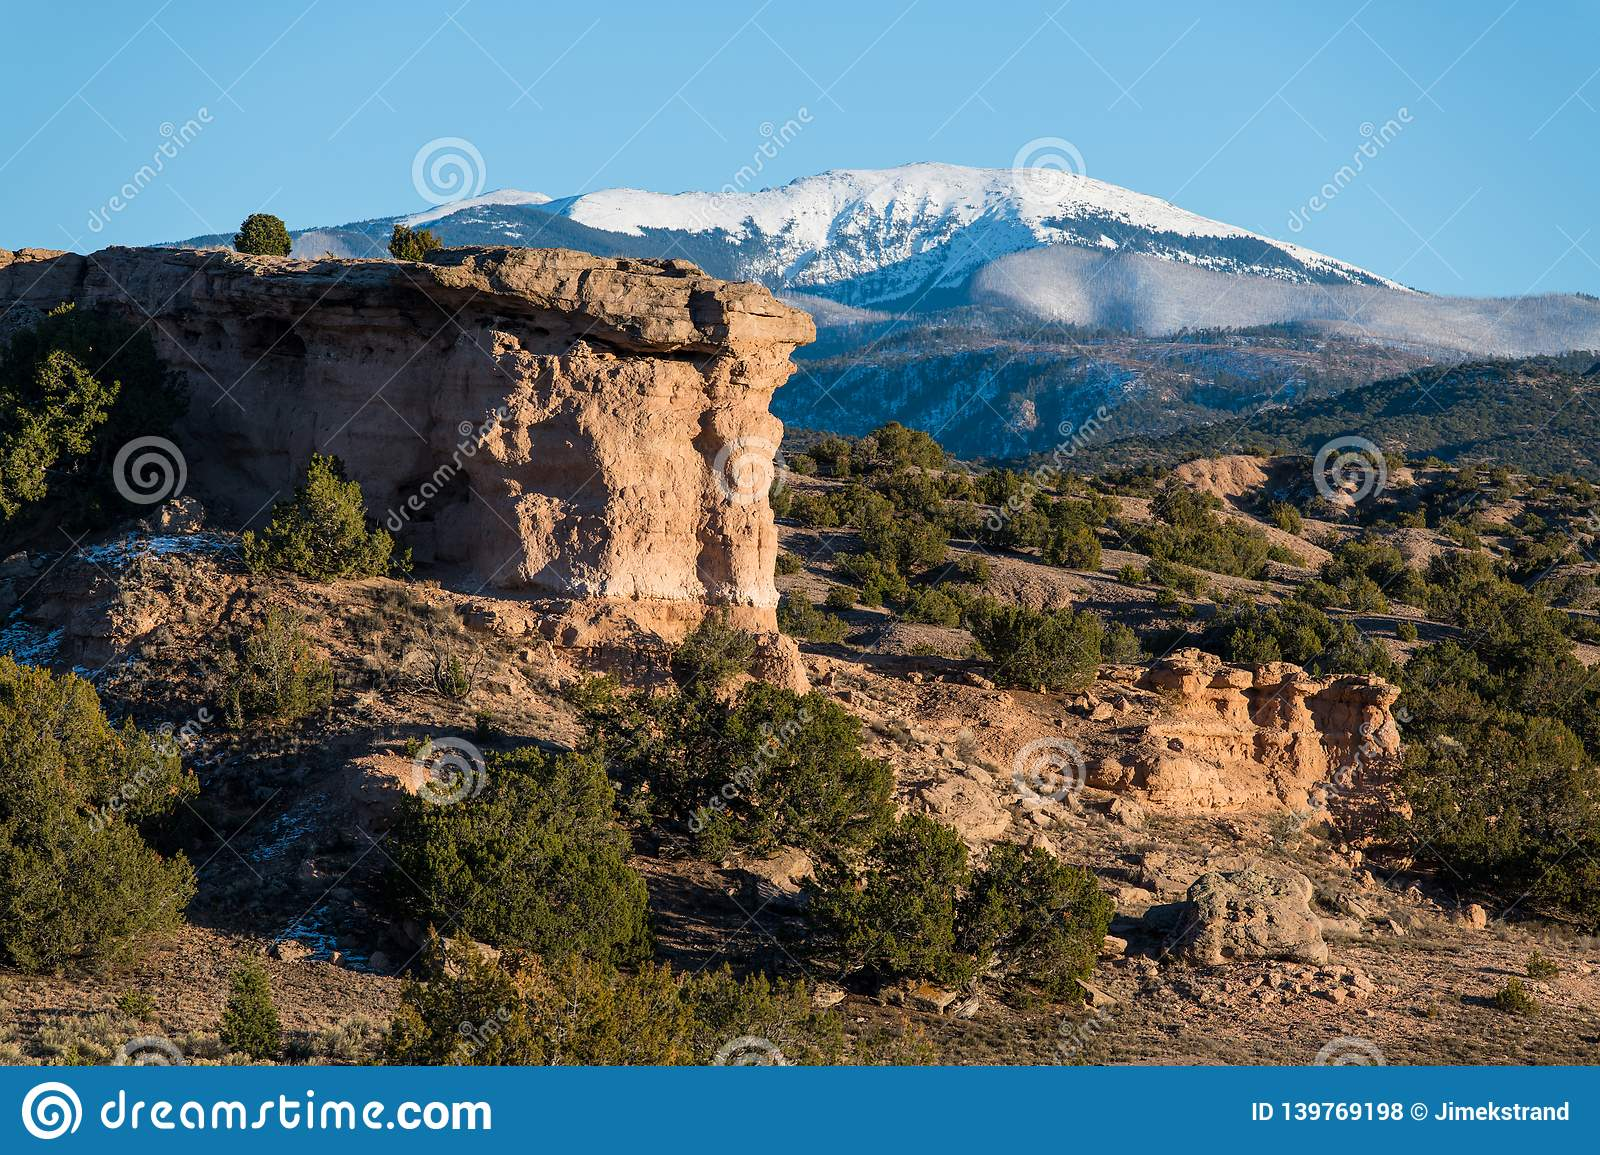 Red rock formation with a snow-capped mountain peak near Santa Fe, New Mexico